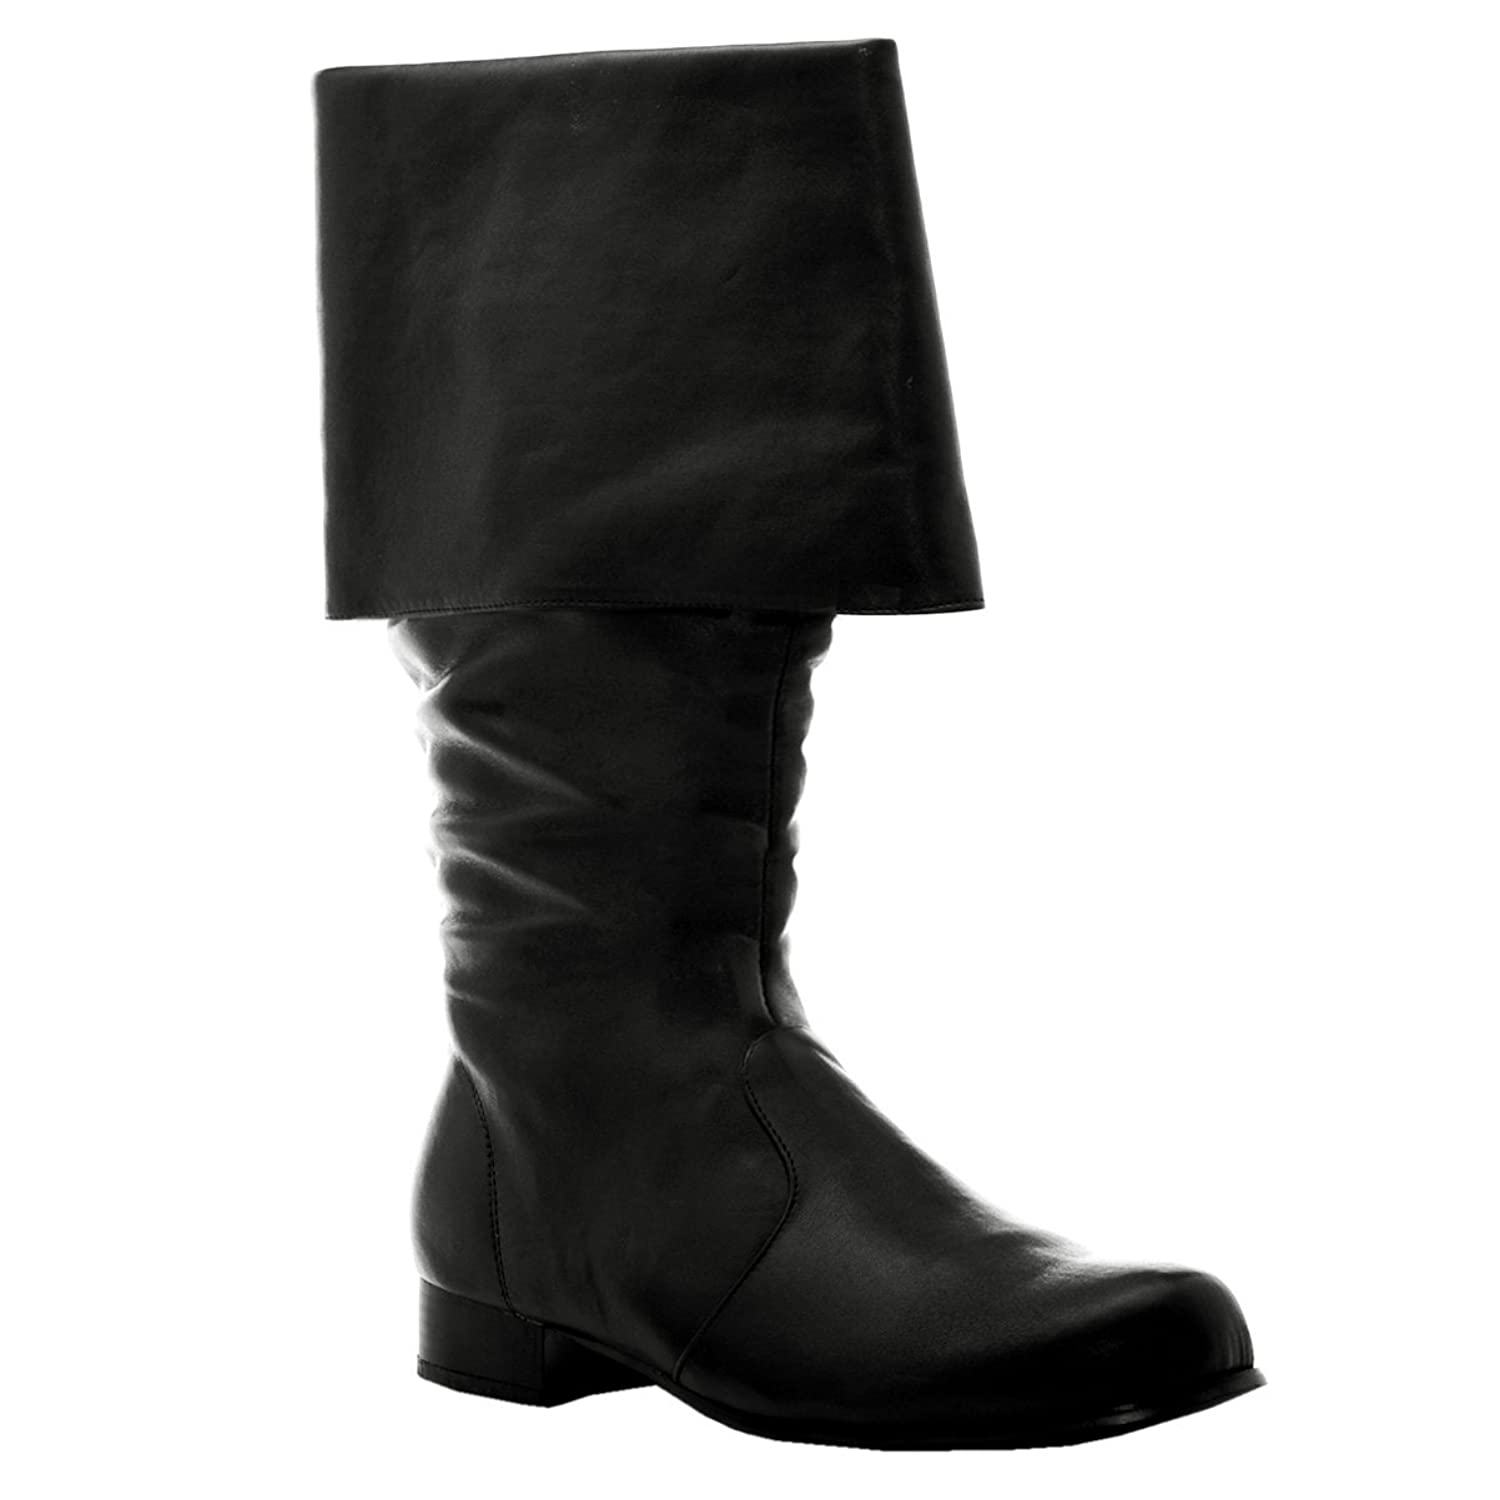 1 inch Heel (Mens Sizes) Cuffed Pirate Knee Boot Black or Brown